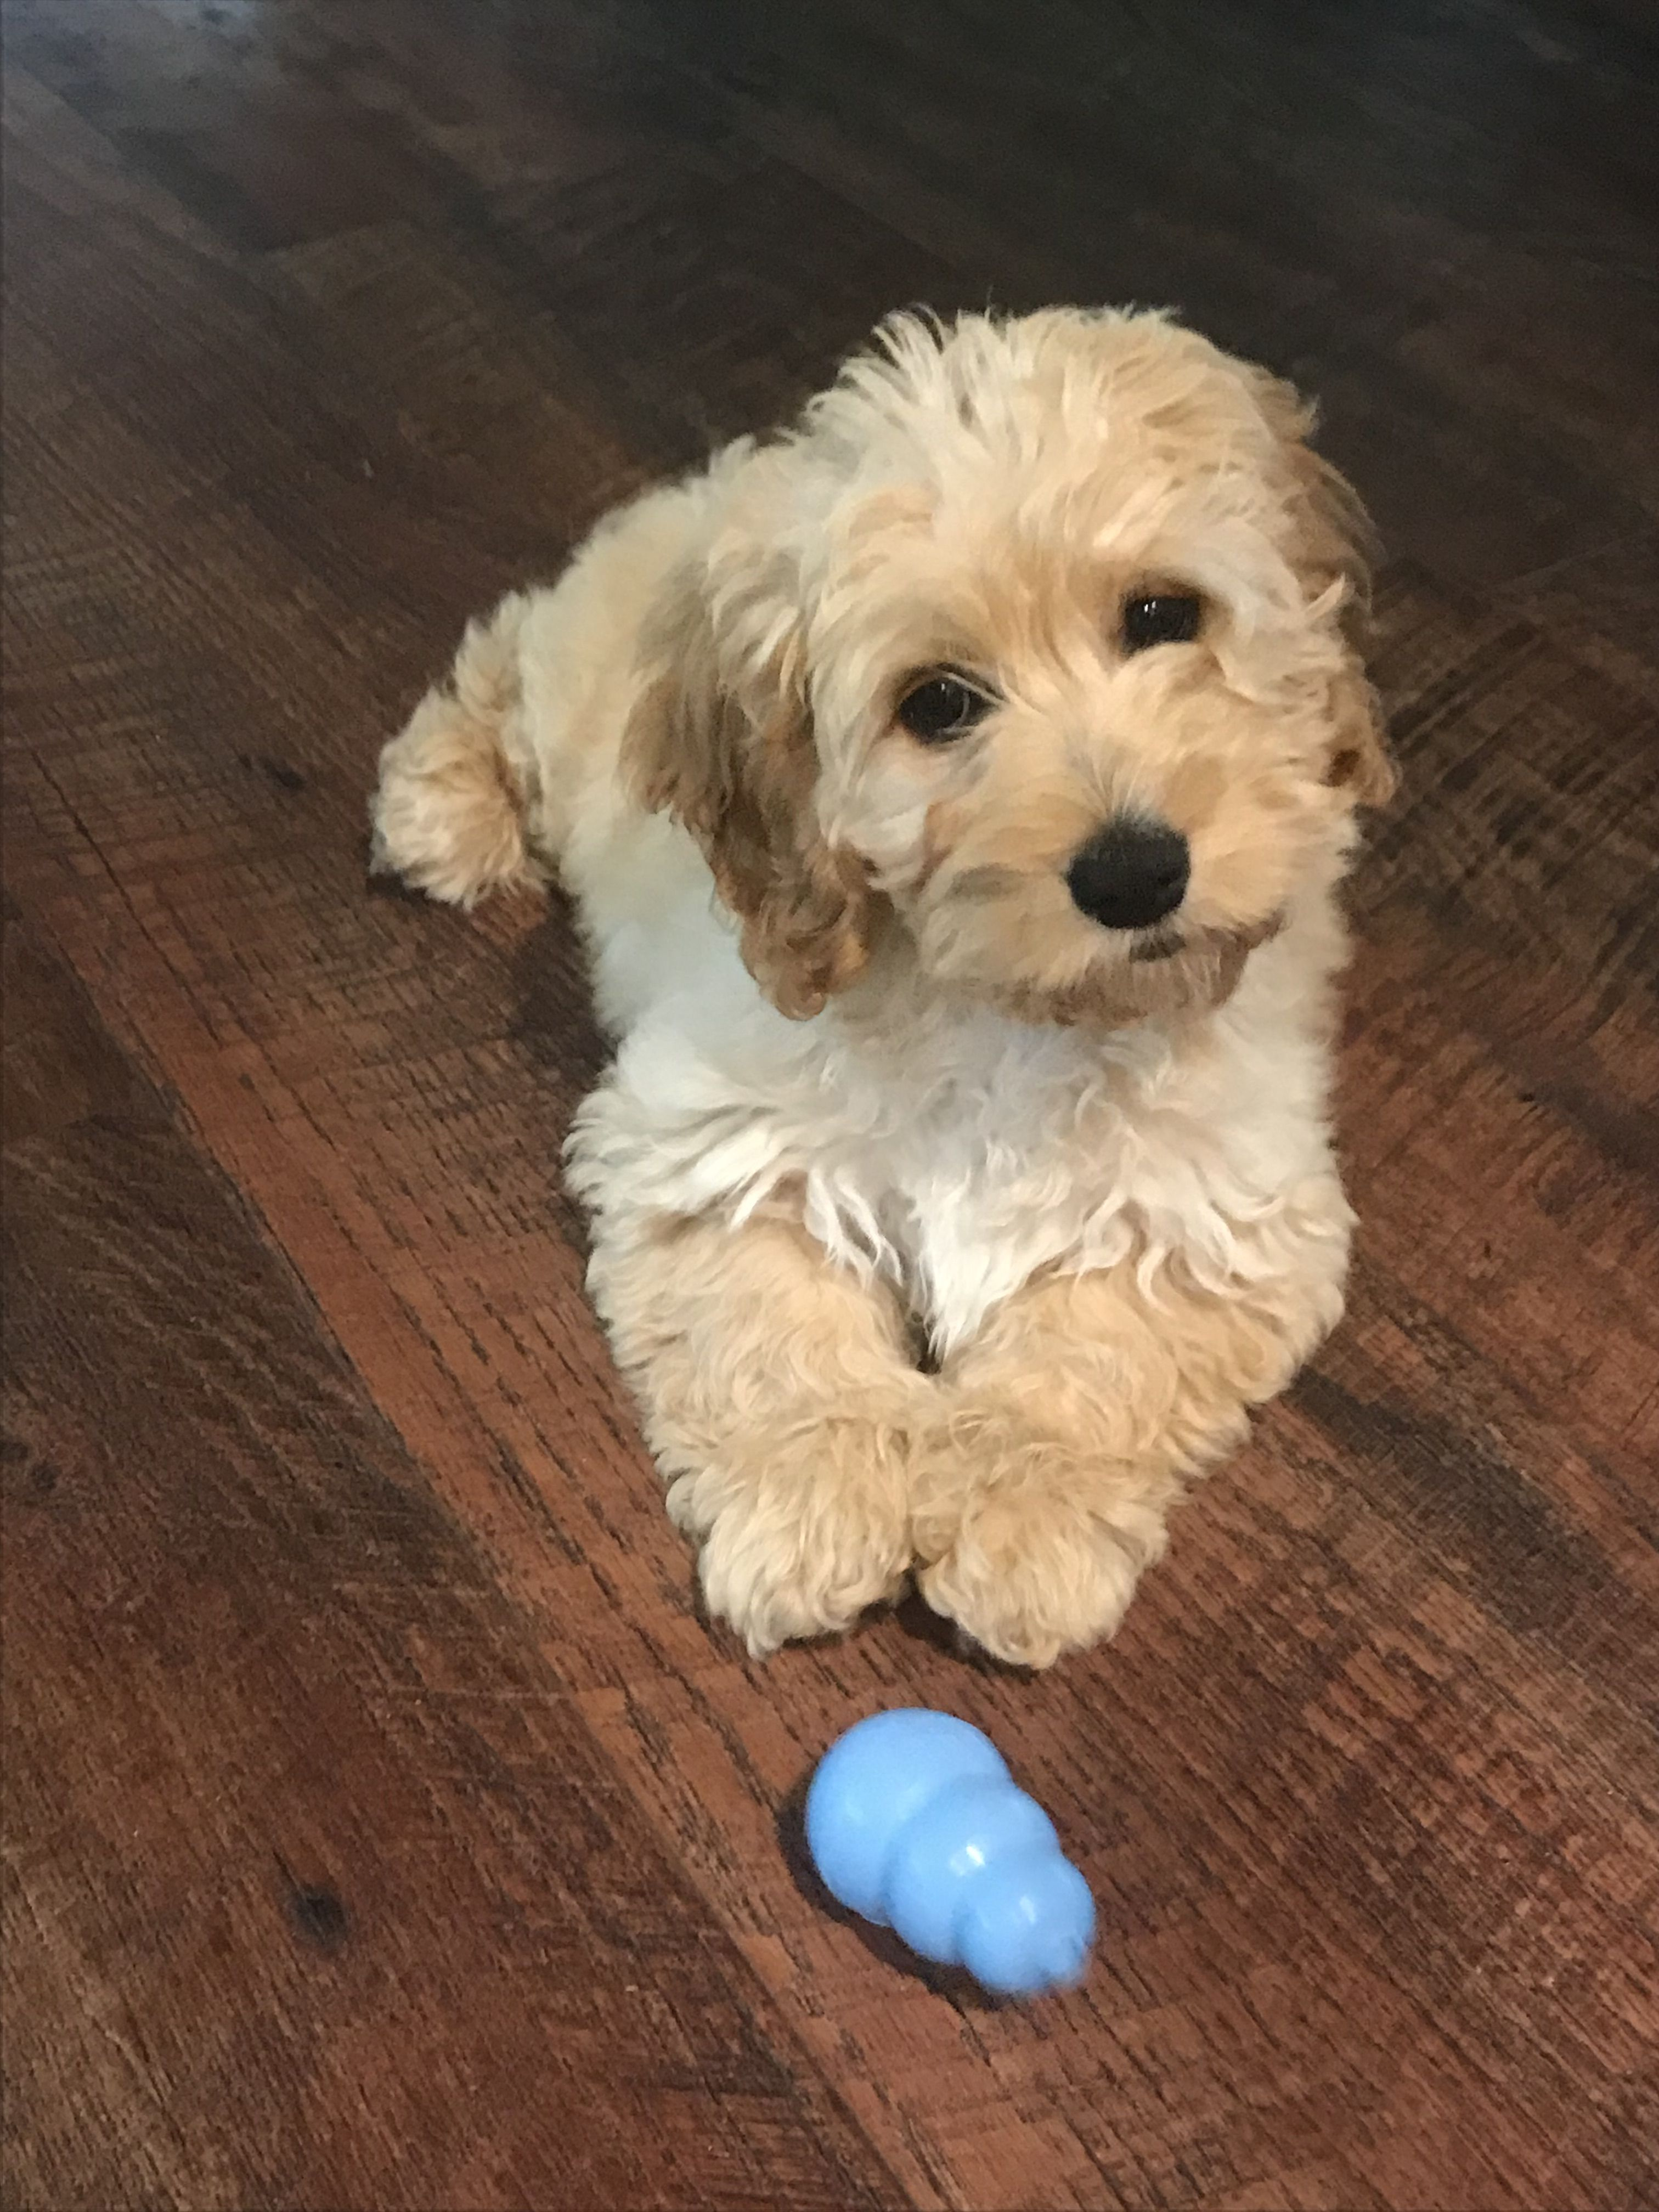 Tidbits For Puppy Parenting Puppies Puppy Training Classes New